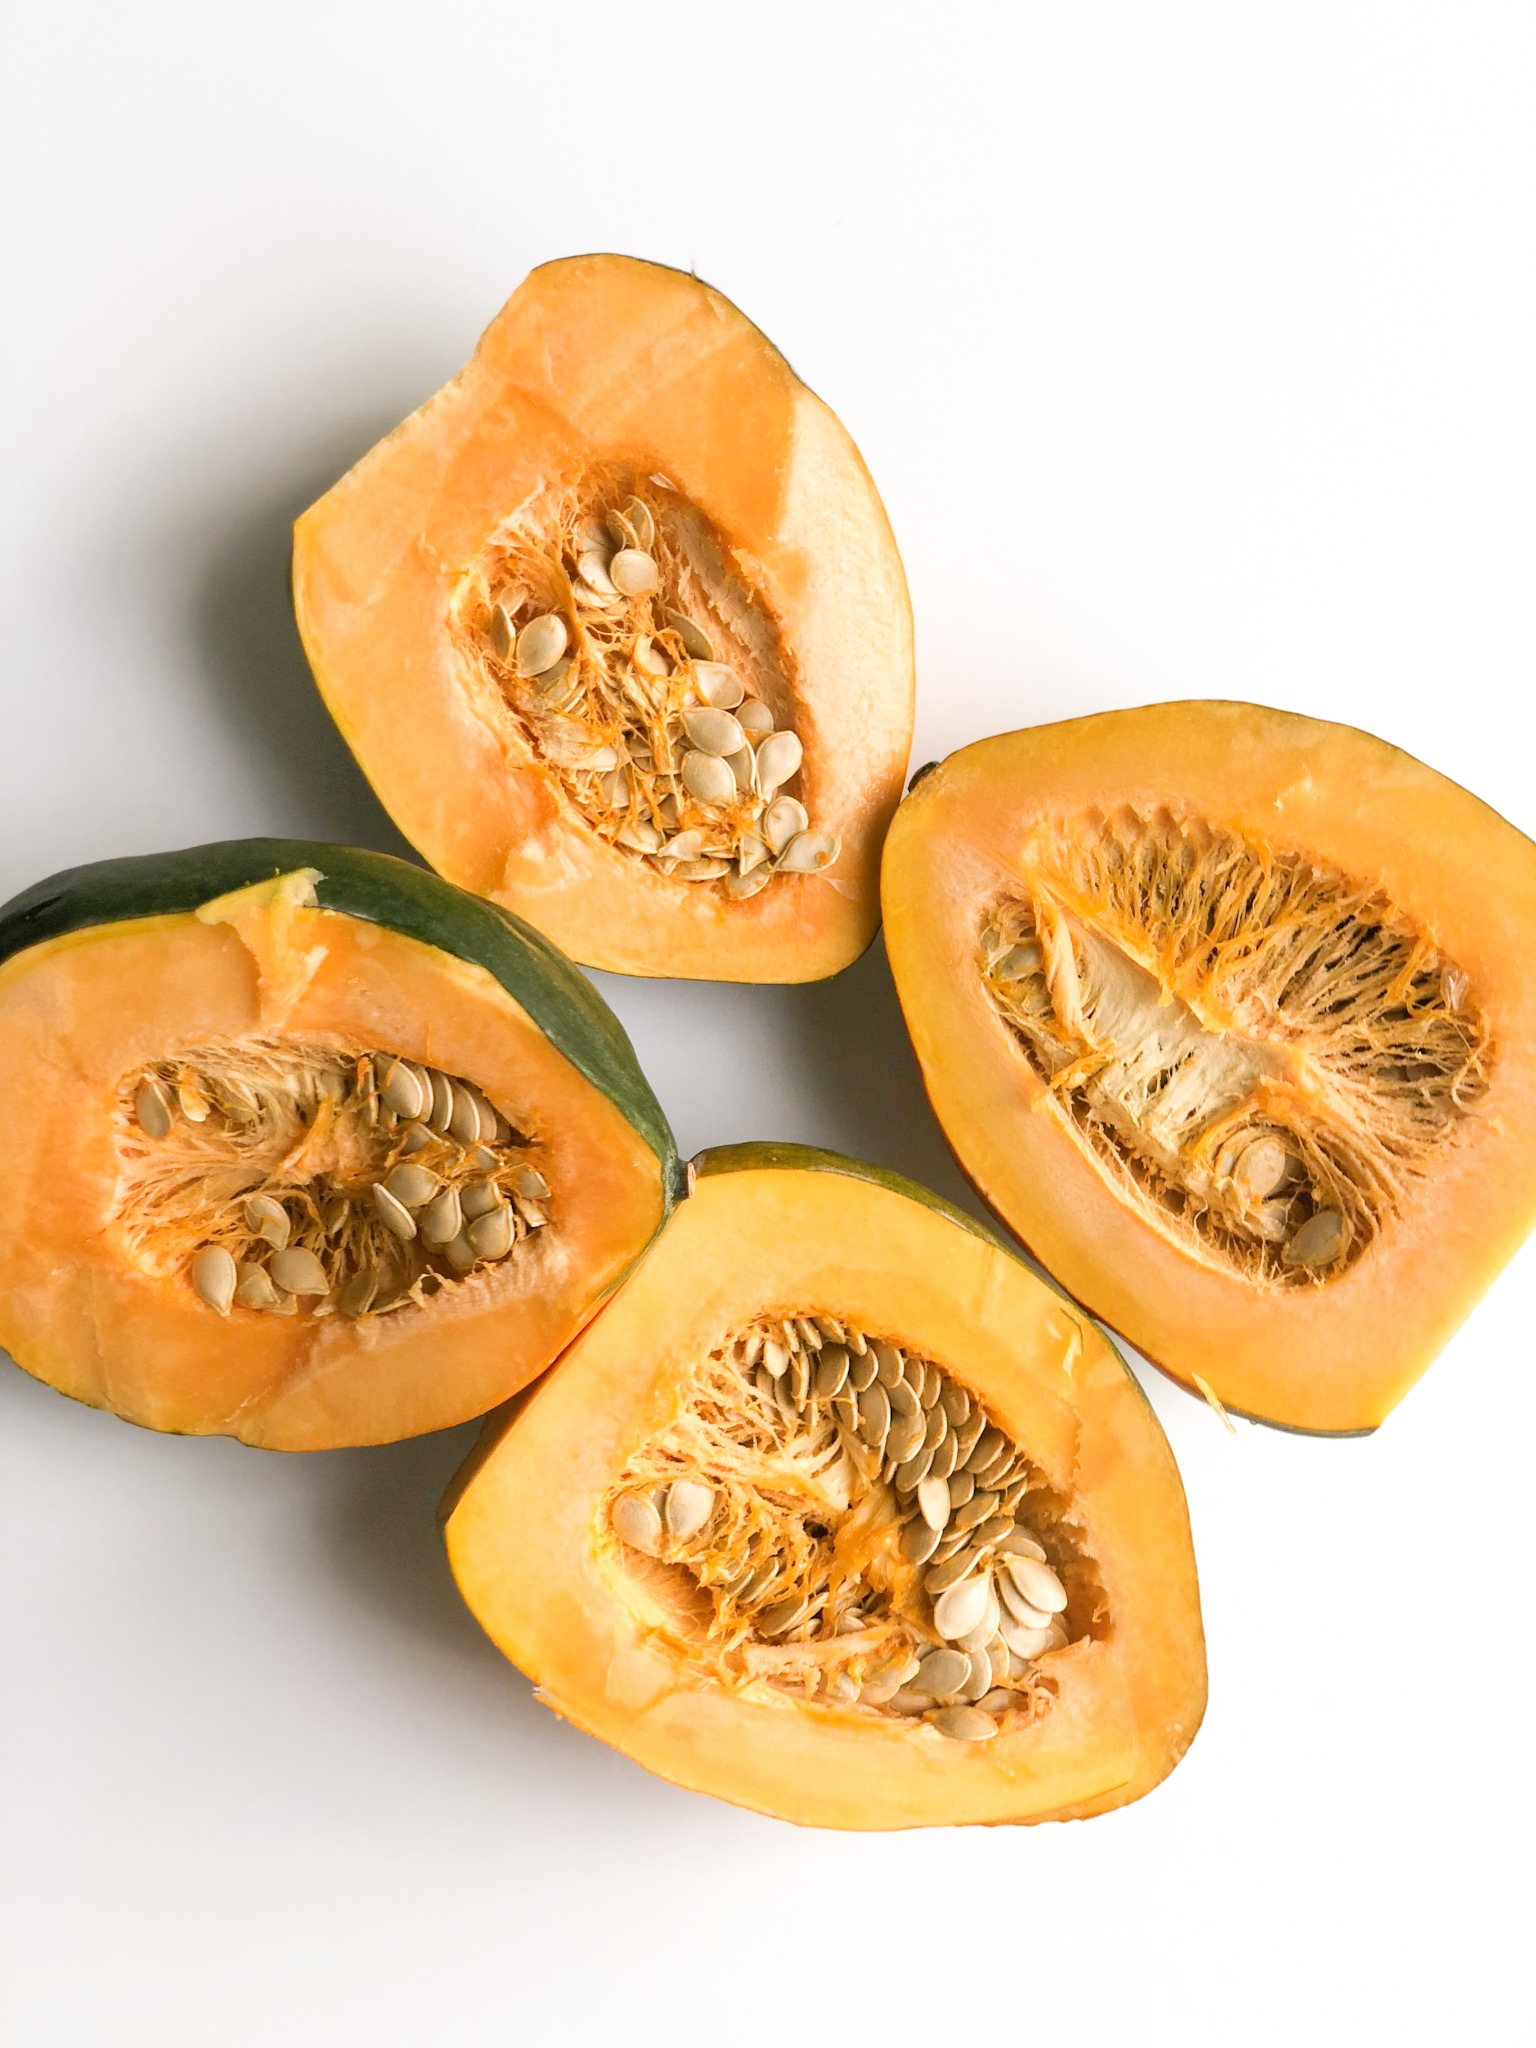 - Acorn squash has significant levels of vitamin C, vitamin A, thiamin, pantothenic acid, and other B-family vitamins, and its range of minerals is truly impressive, including potassium, magnesium, manganese, iron, copper, phosphorous, and calcium.